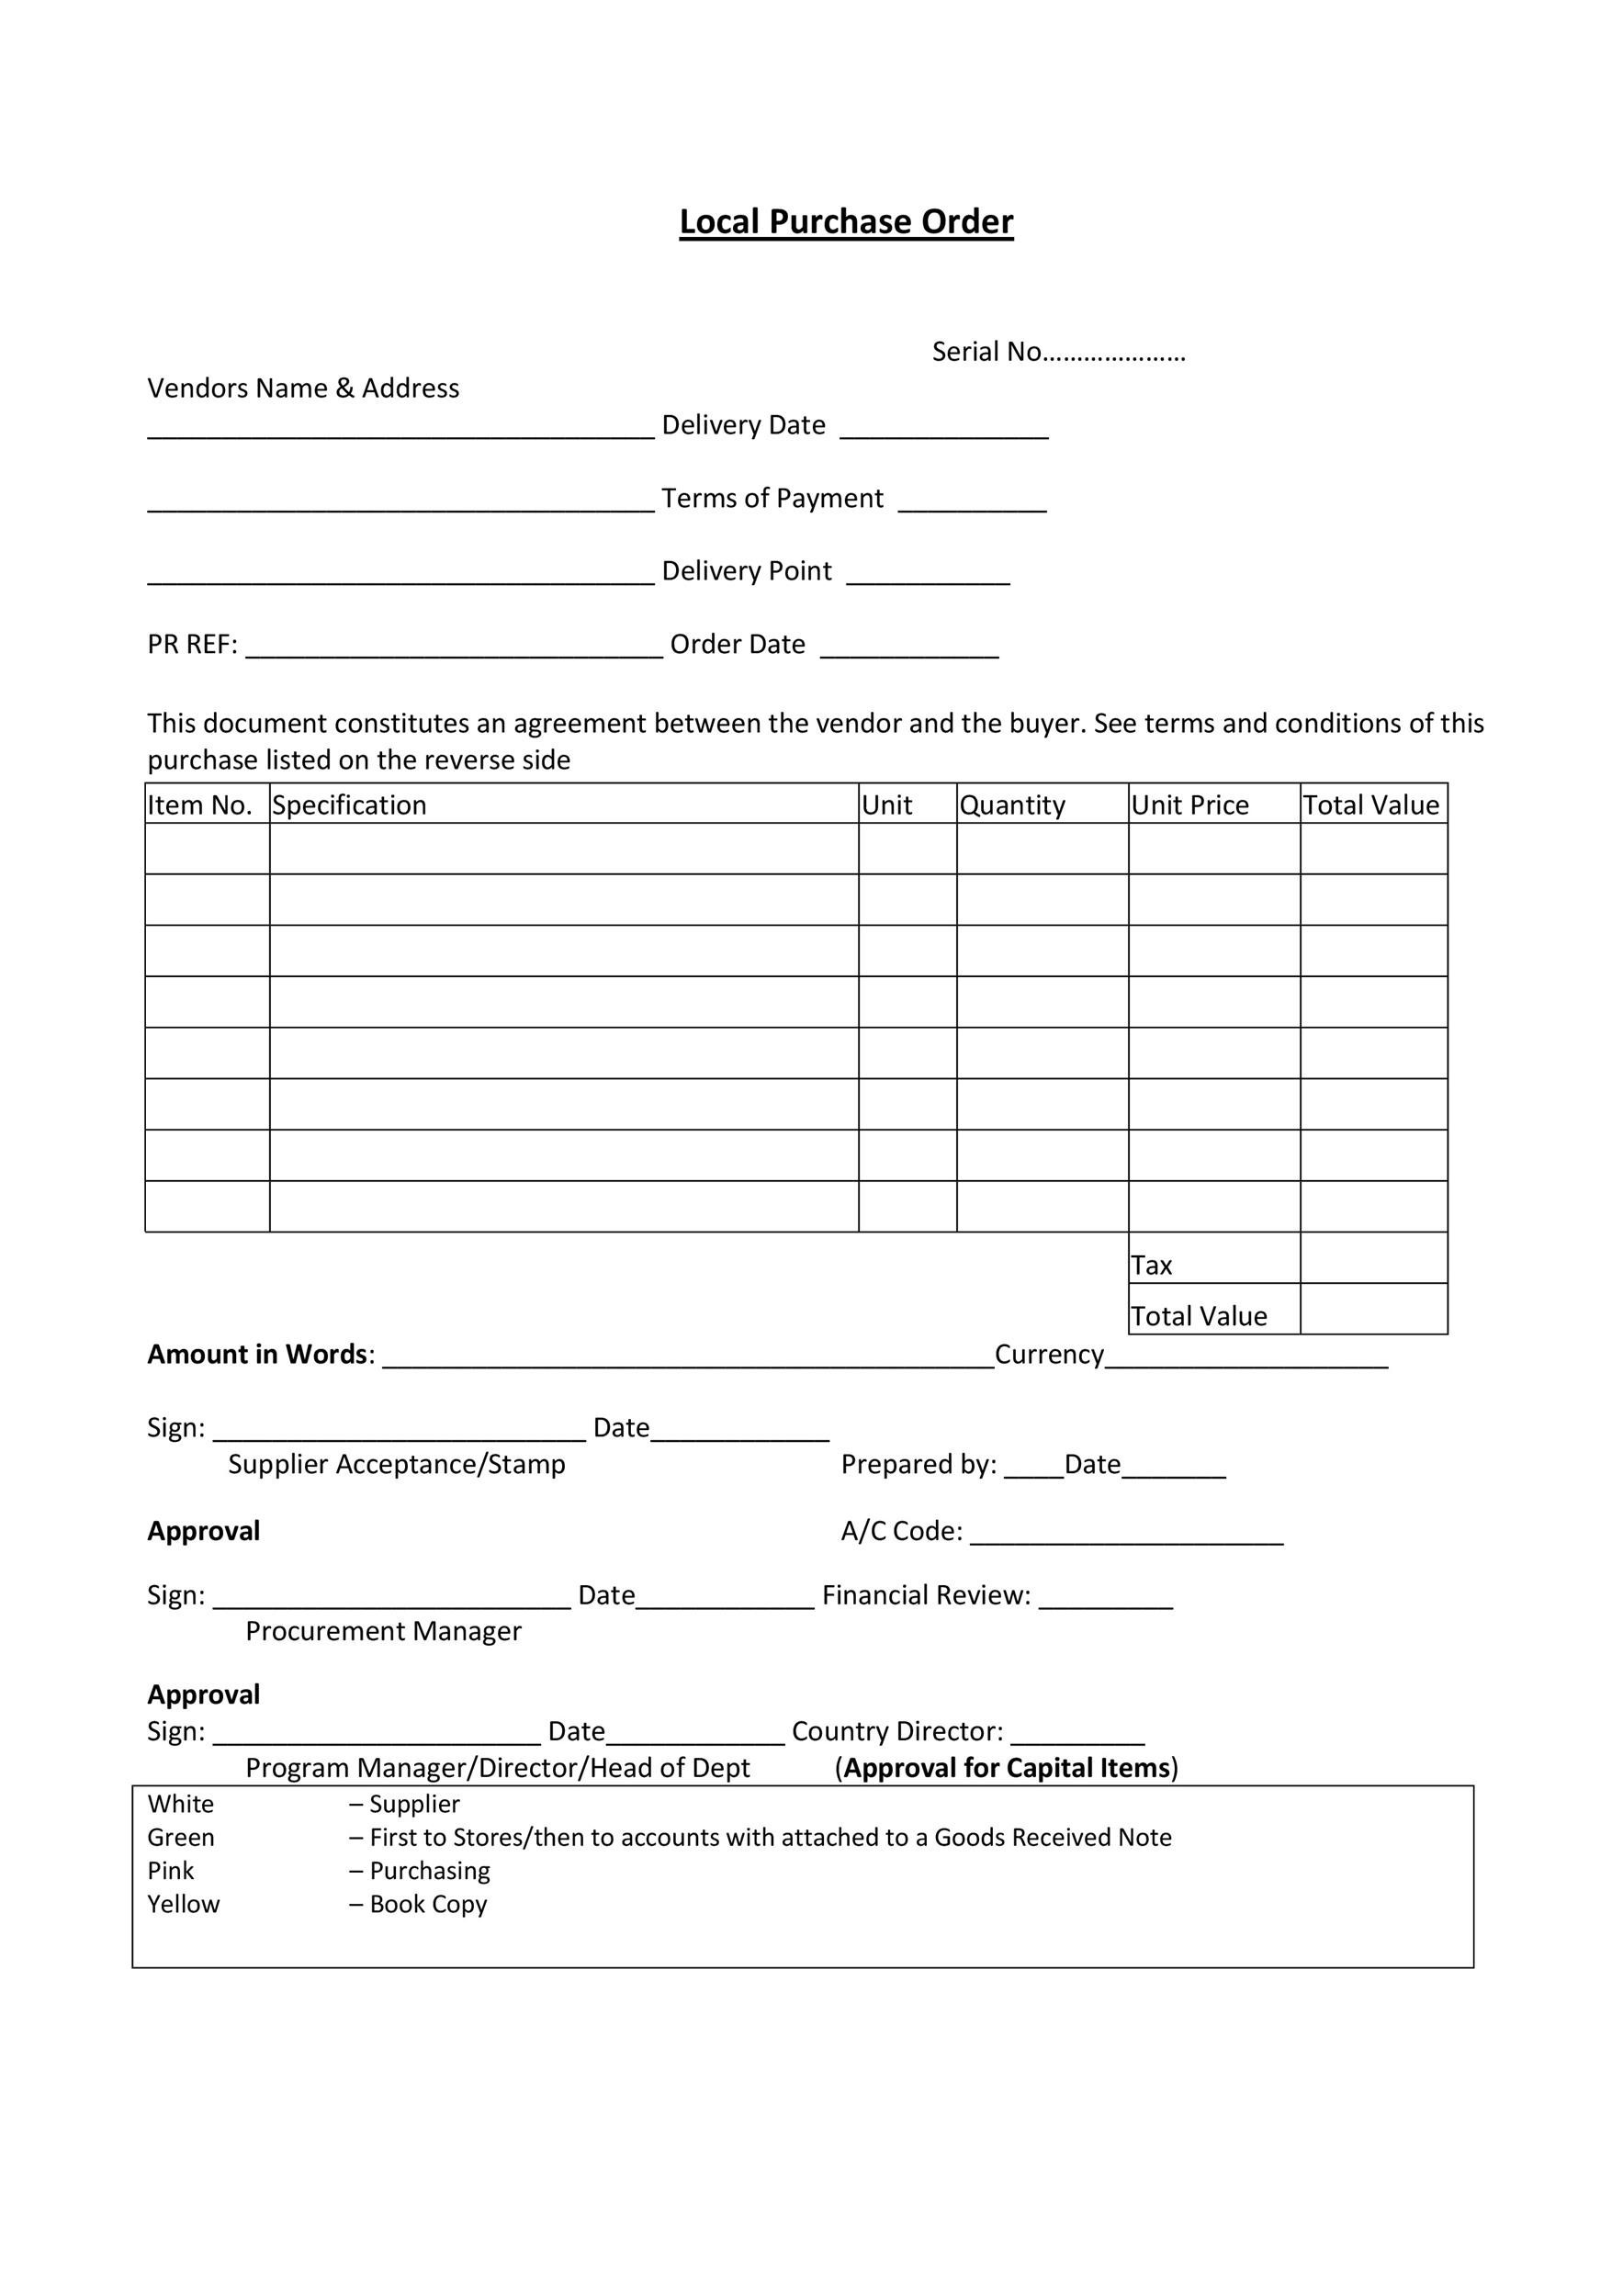 Doc768994 Lpo Format Sample Template lpo 80 Related Docs – Sample Local Purchase Order